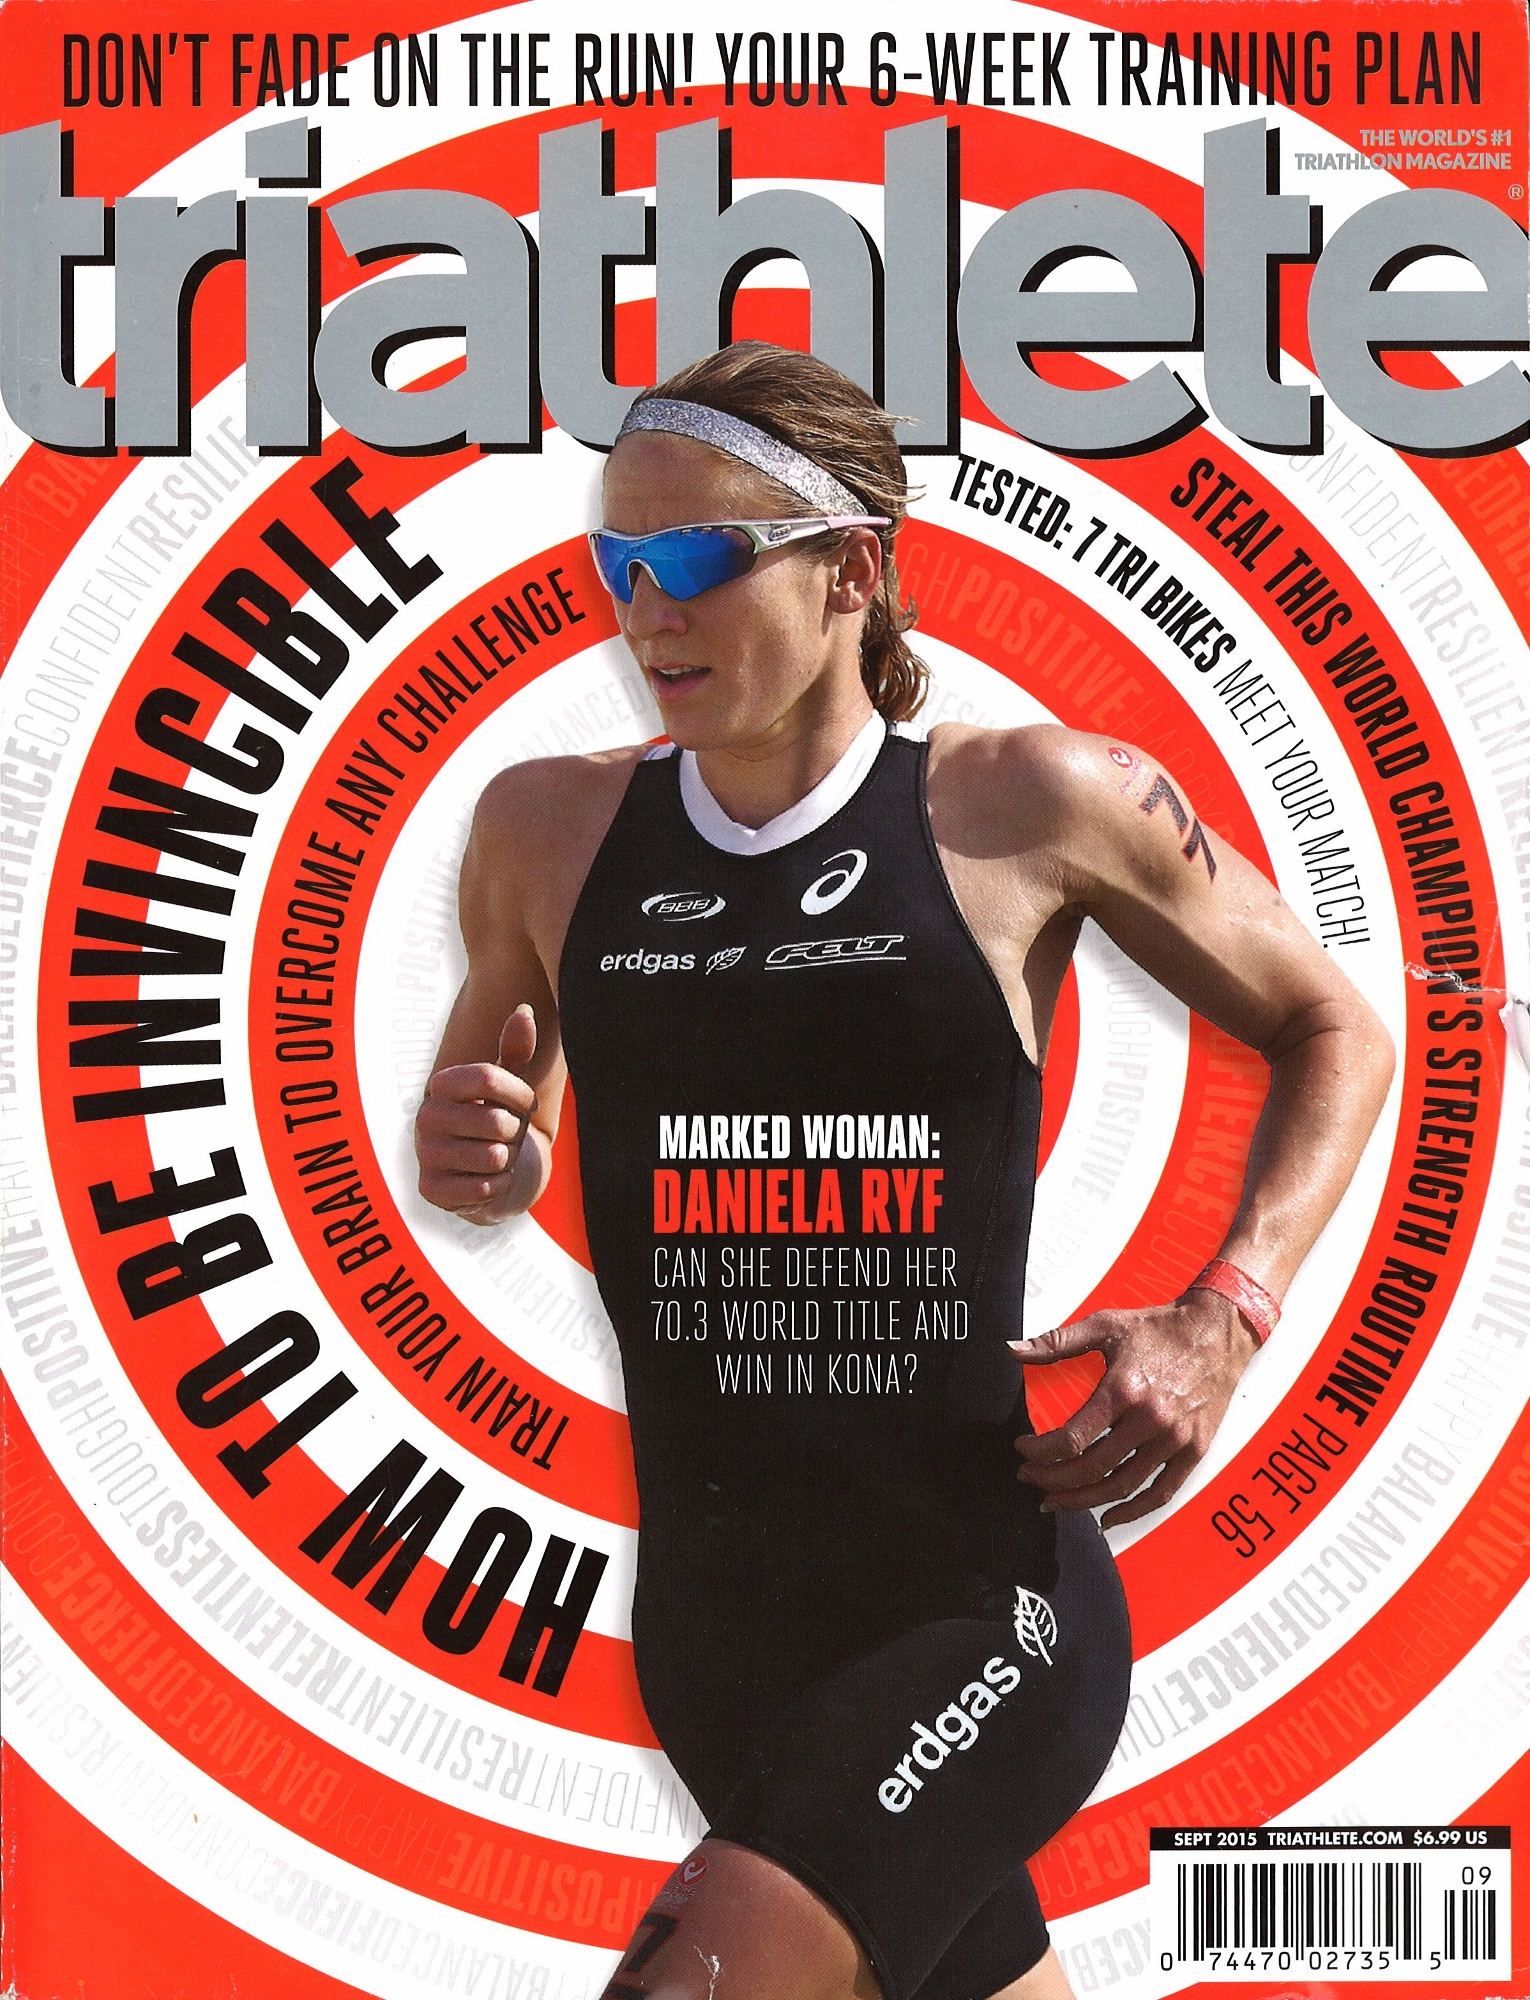 September 2015 Triathlete Cover